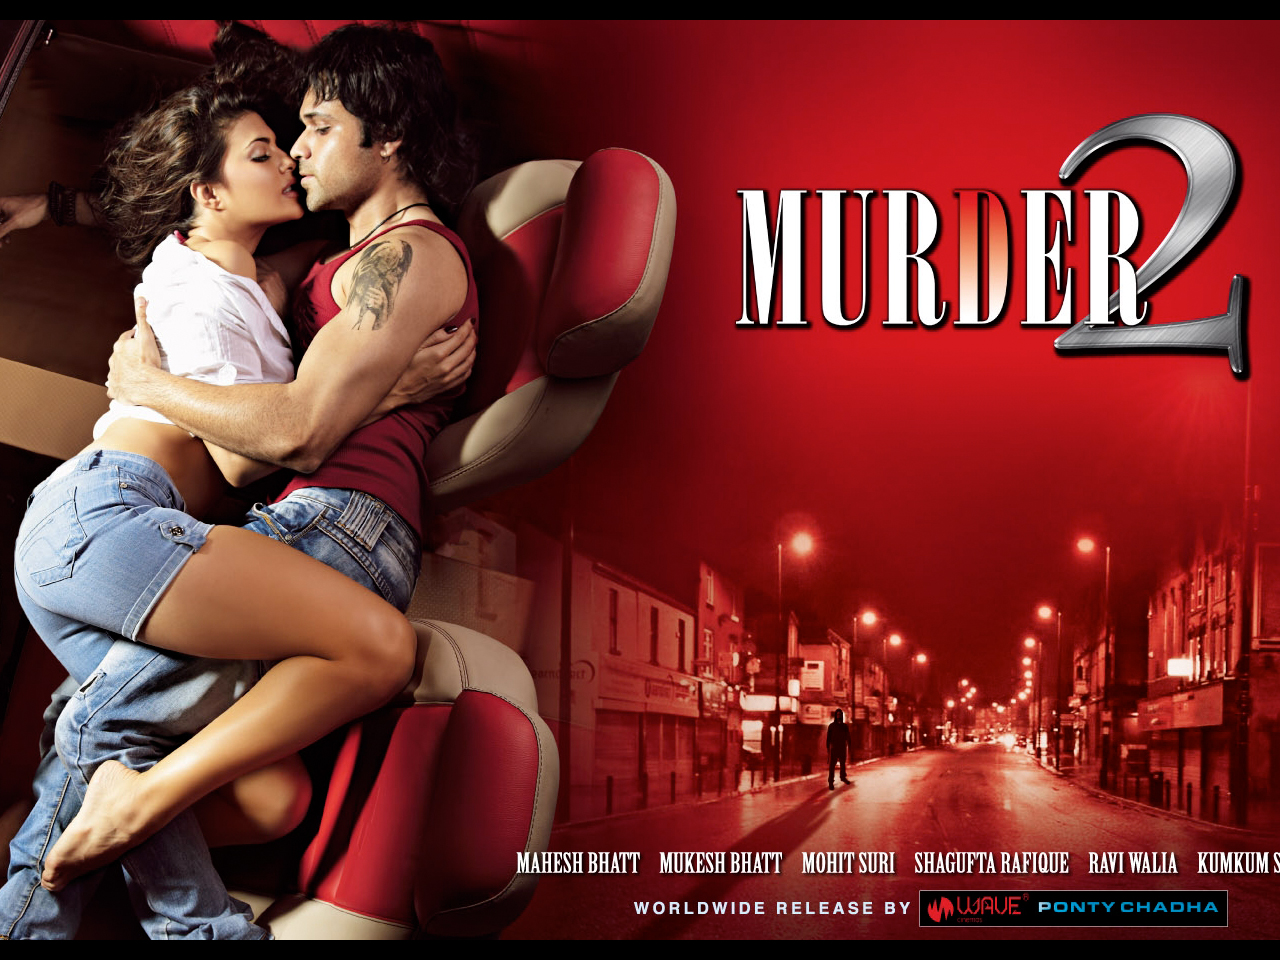 bollywood movies poster full hd free download group 1 http